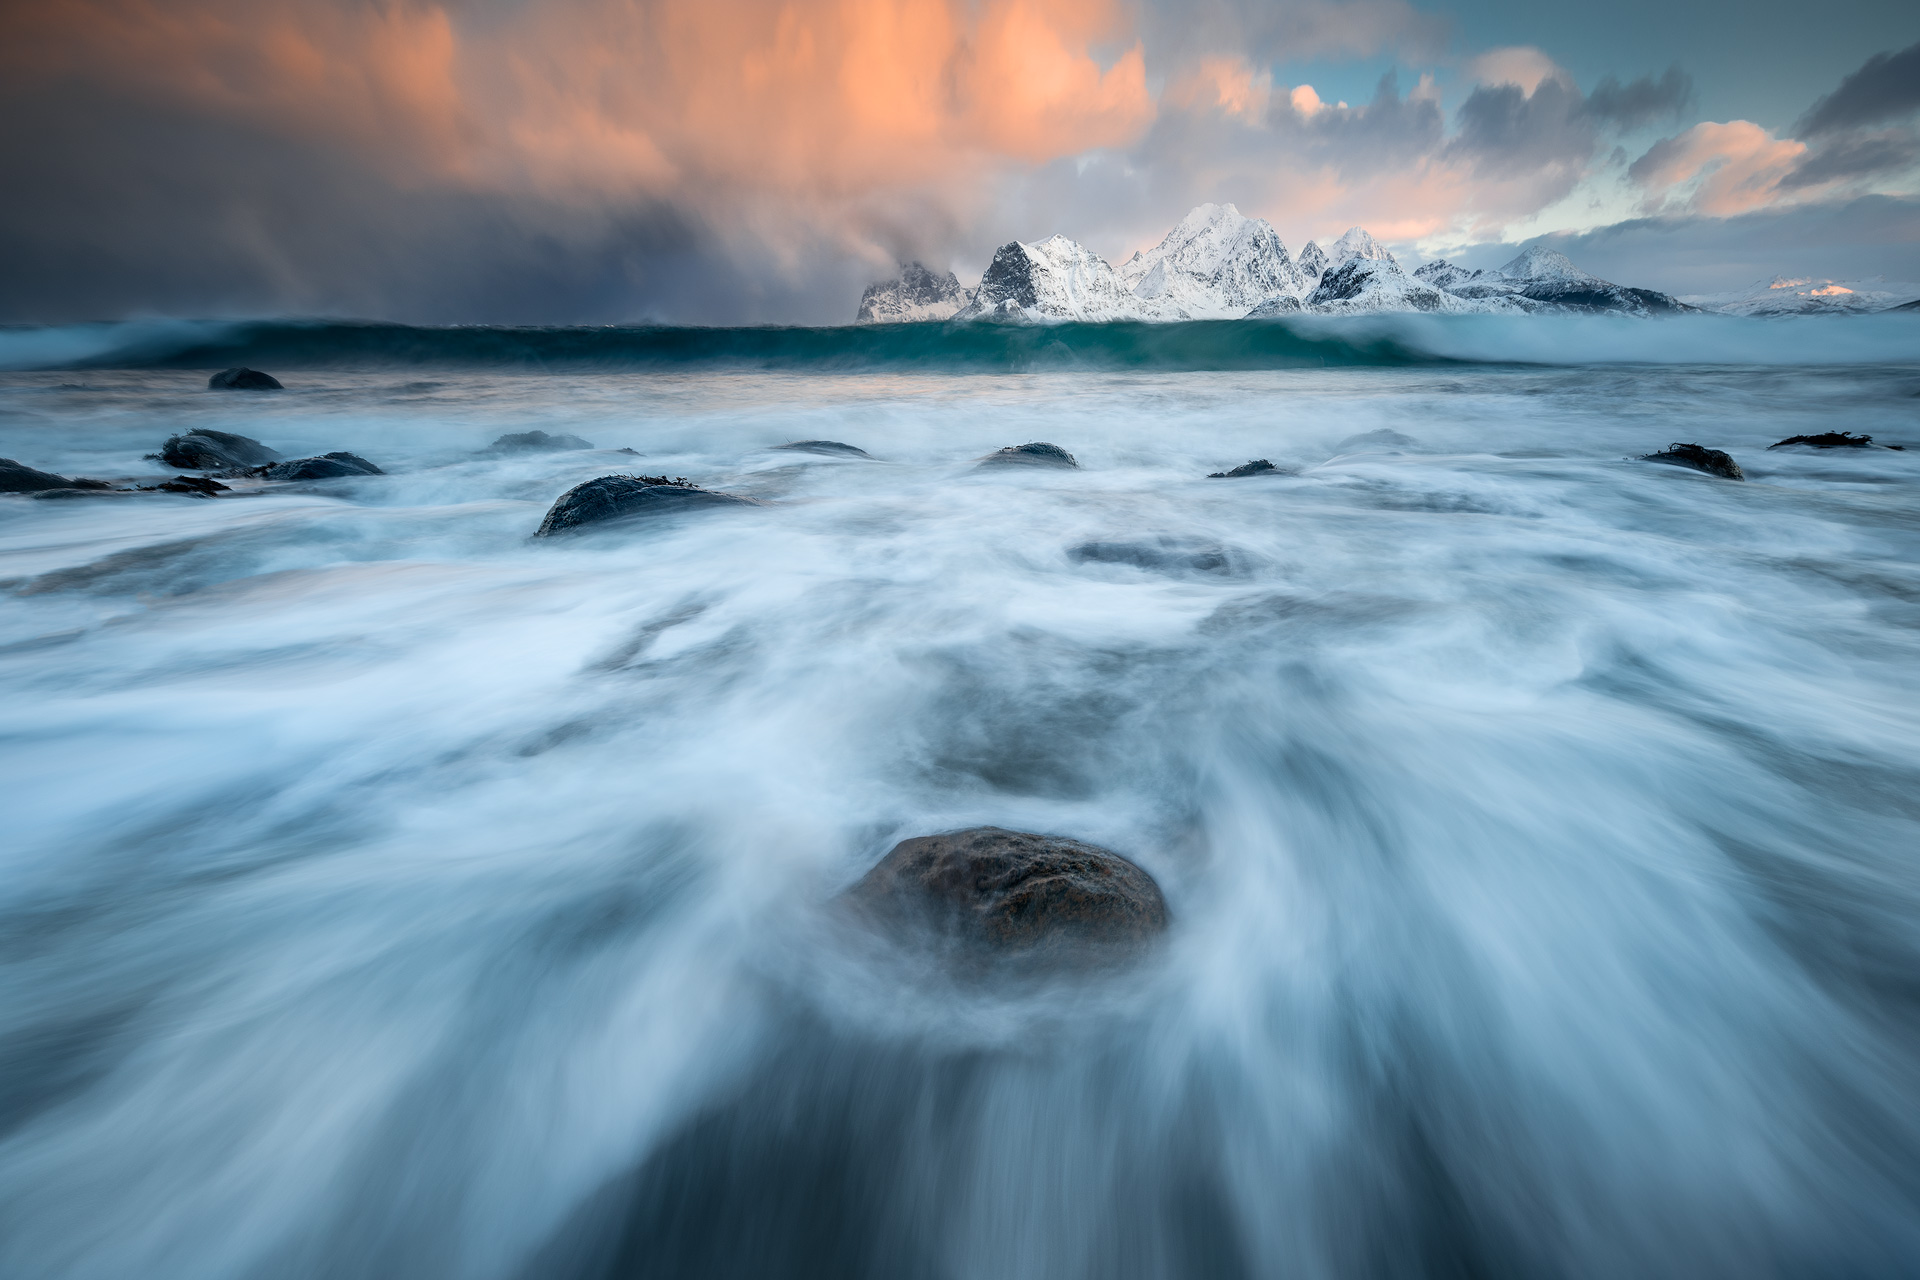 Wintry seascape from a low-down perspective with crashing waves